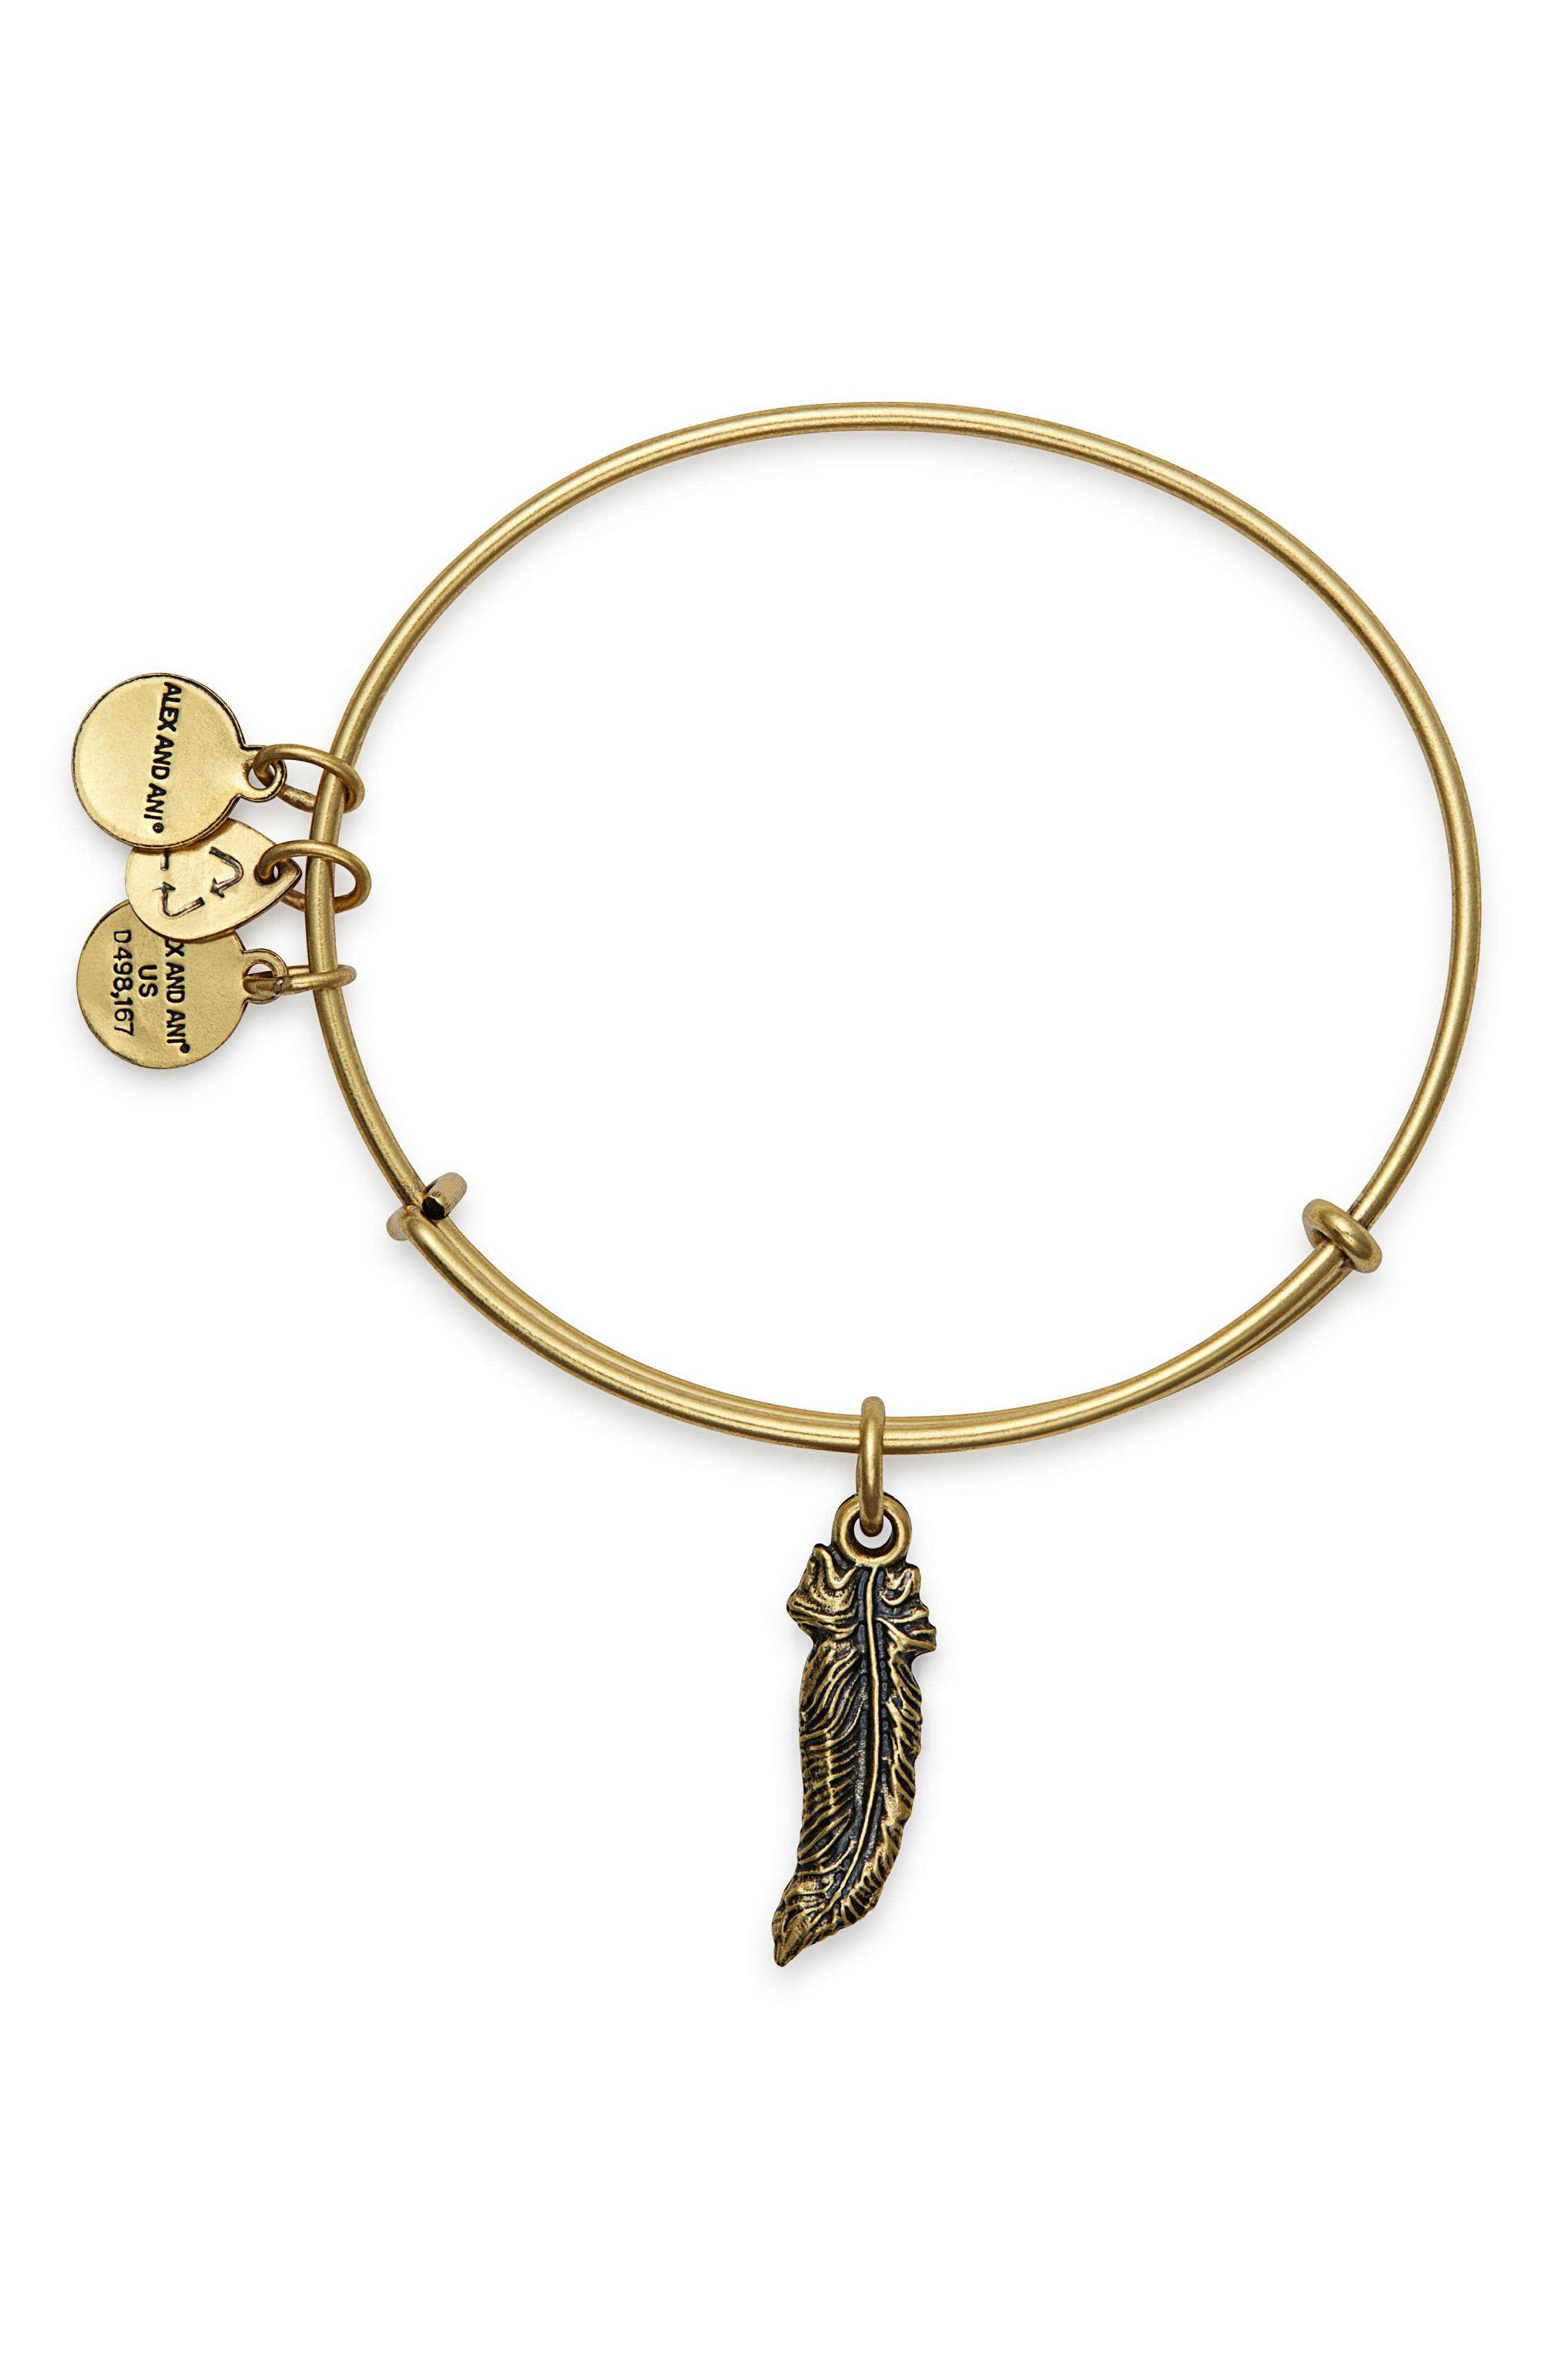 Feather Adjustable Wire Bangle,                             Alternate thumbnail 2, color,                             RUSSIAN GOLD